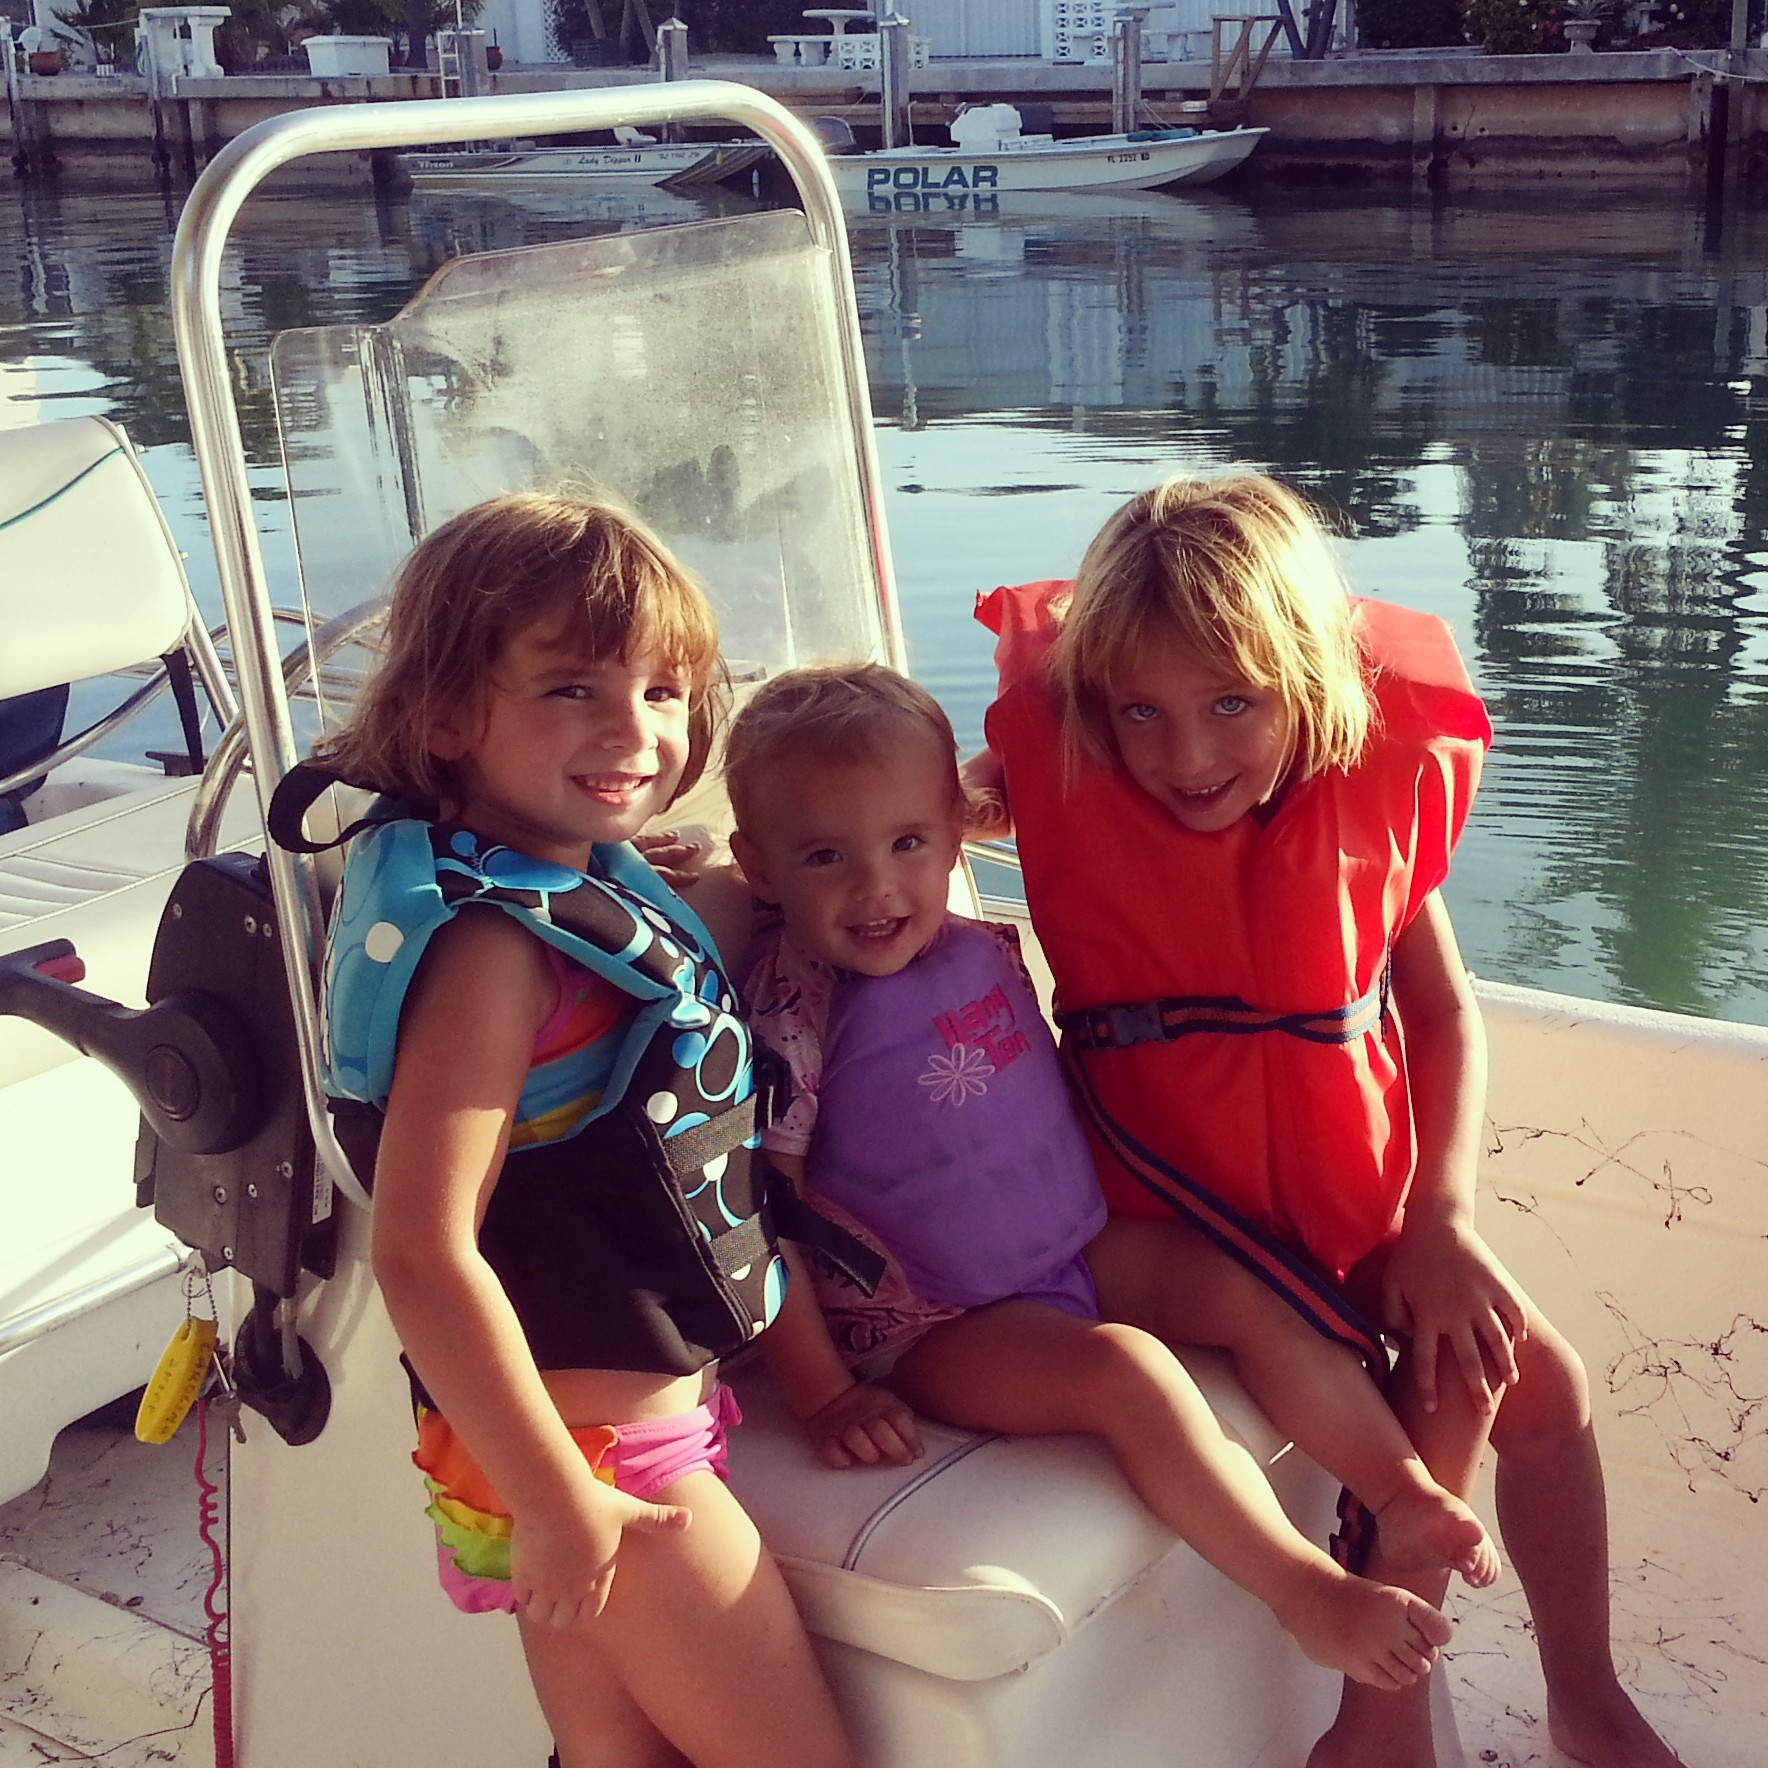 Selfie Sticks vs. Outdoors....a Mother's reflection on her daughters upbringing. Girls on the boat. https://reelcamogirl.wordpress.com/2015/01/29/selfie-sticks-vs-outdoors-a-mothers-reflection-on-her-daughters-upbringing/